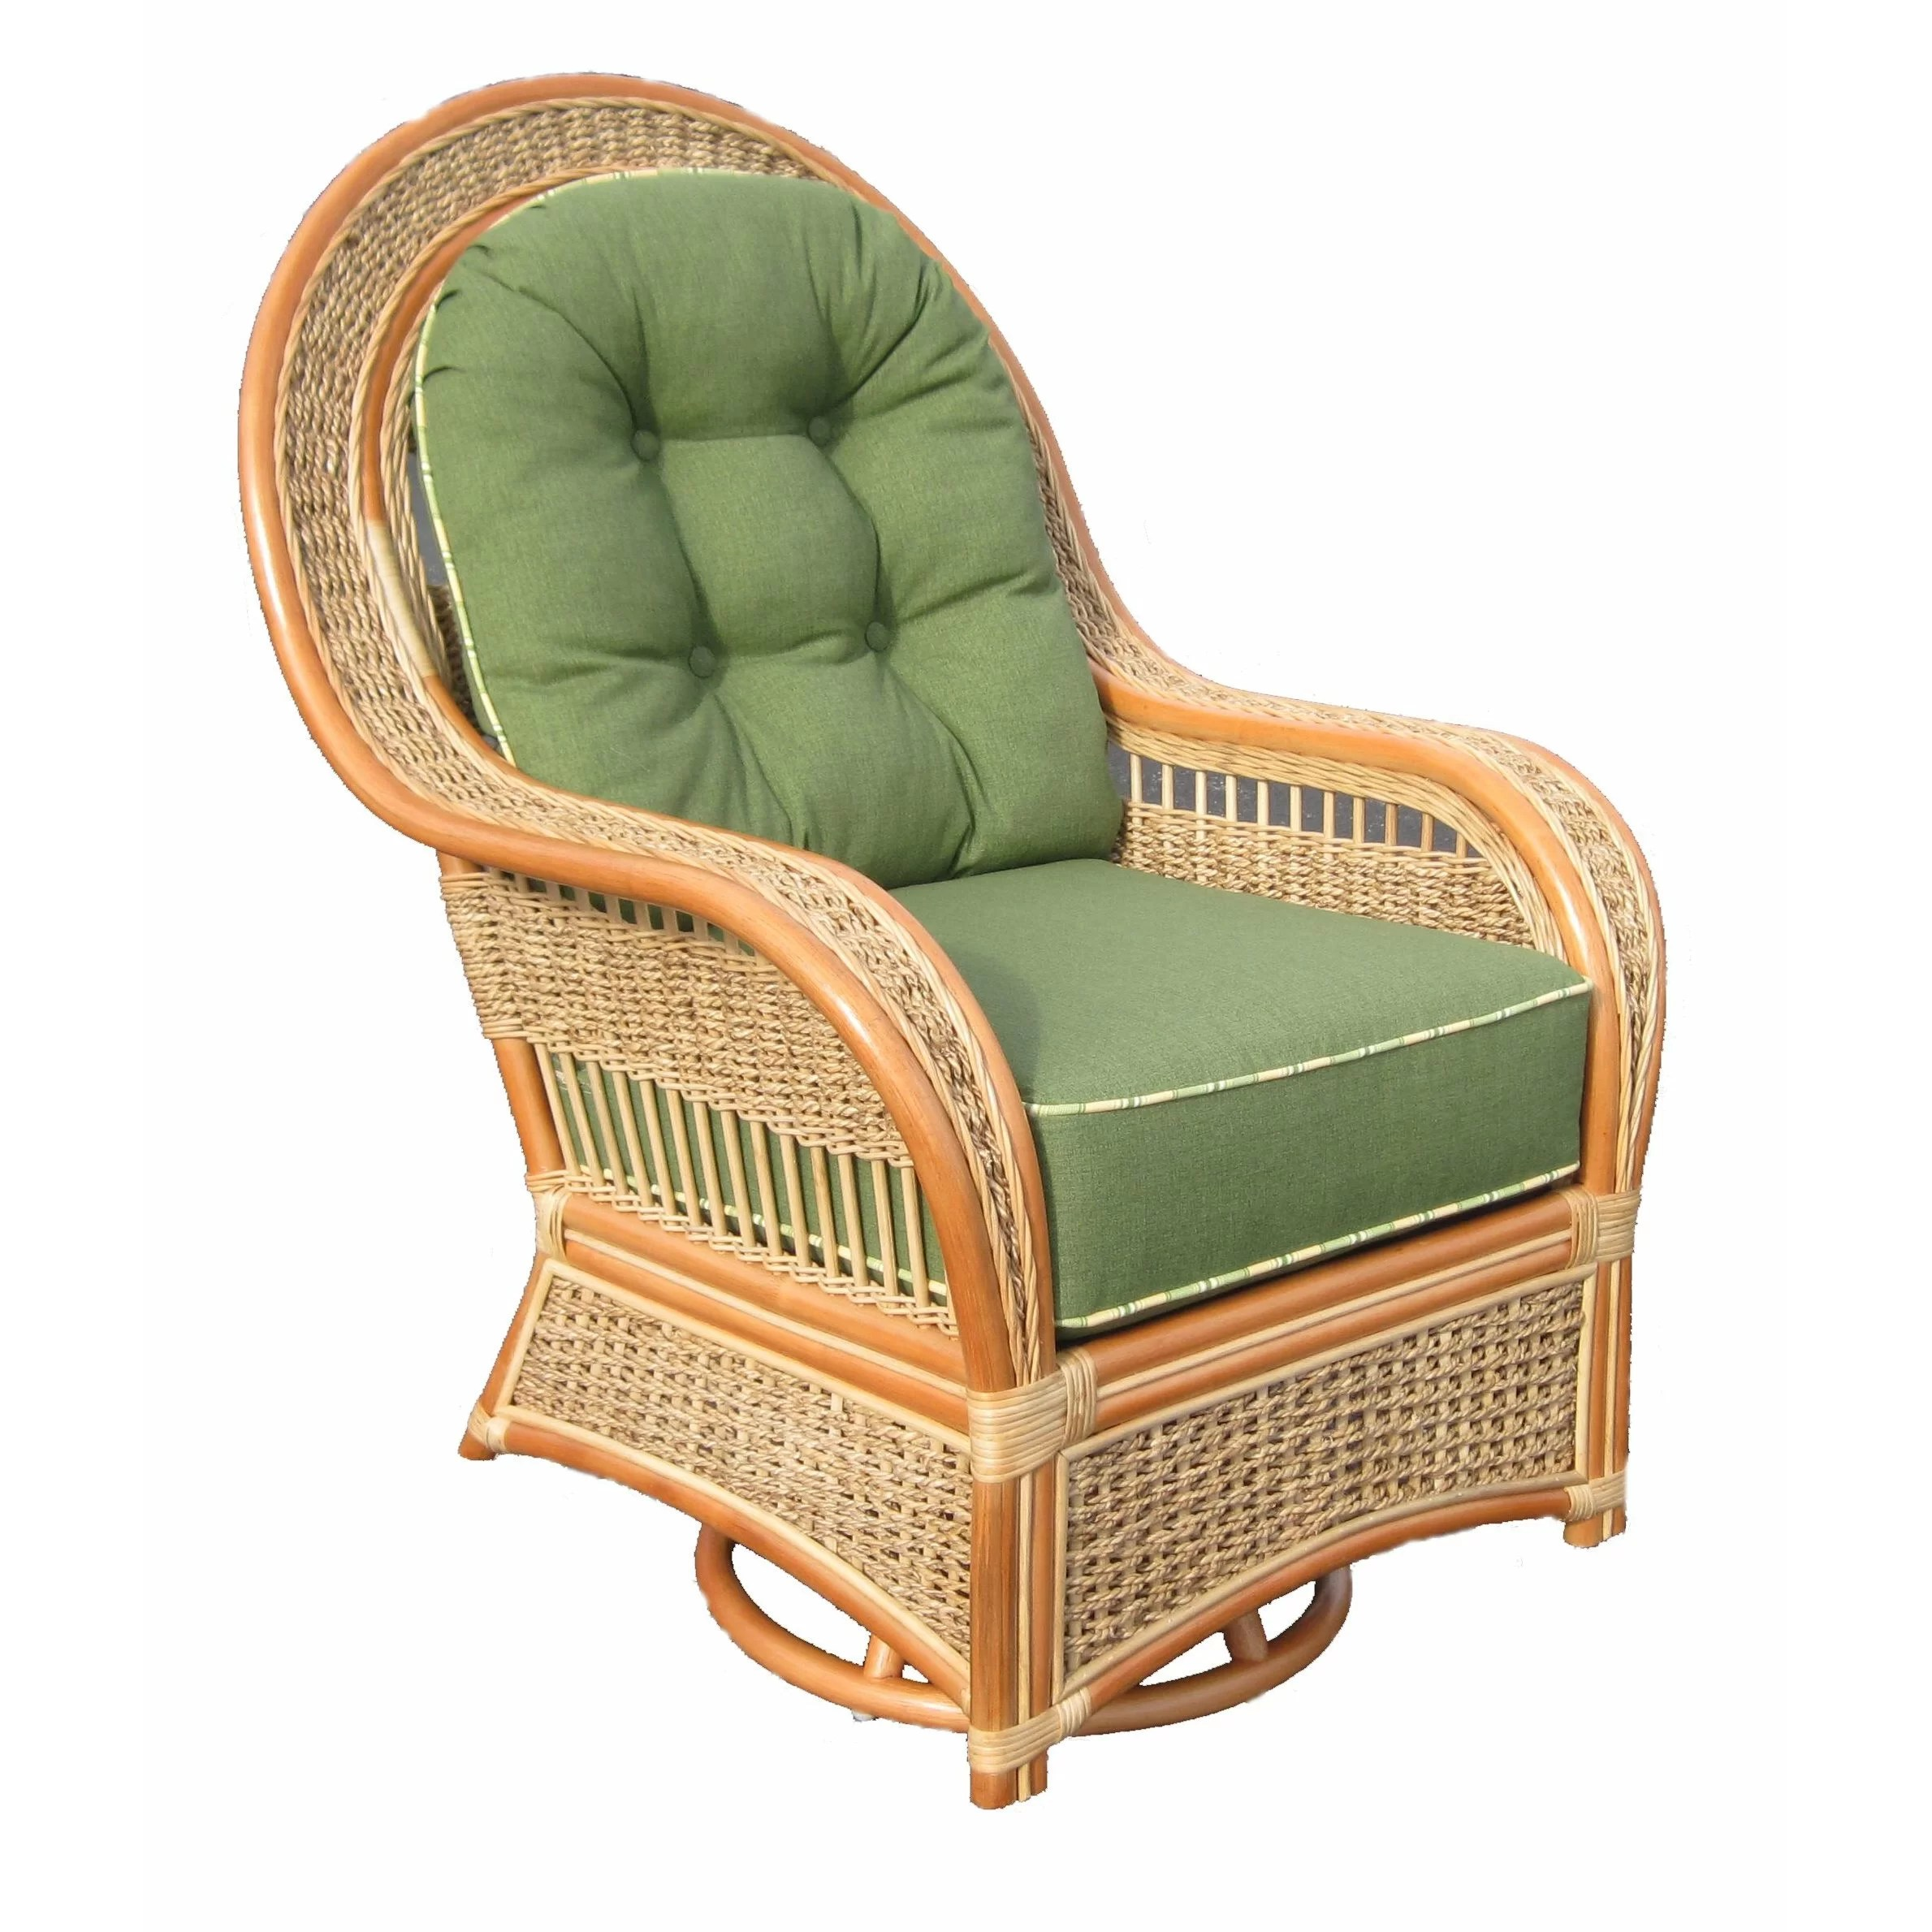 There are many wonderful things about getting older, but going through the aging process also means you might start experiencing bodily fatigue, achy muscles and joint pain more often than you used to. Spice Islands Swivel Rocking Chair & Reviews   Wayfair